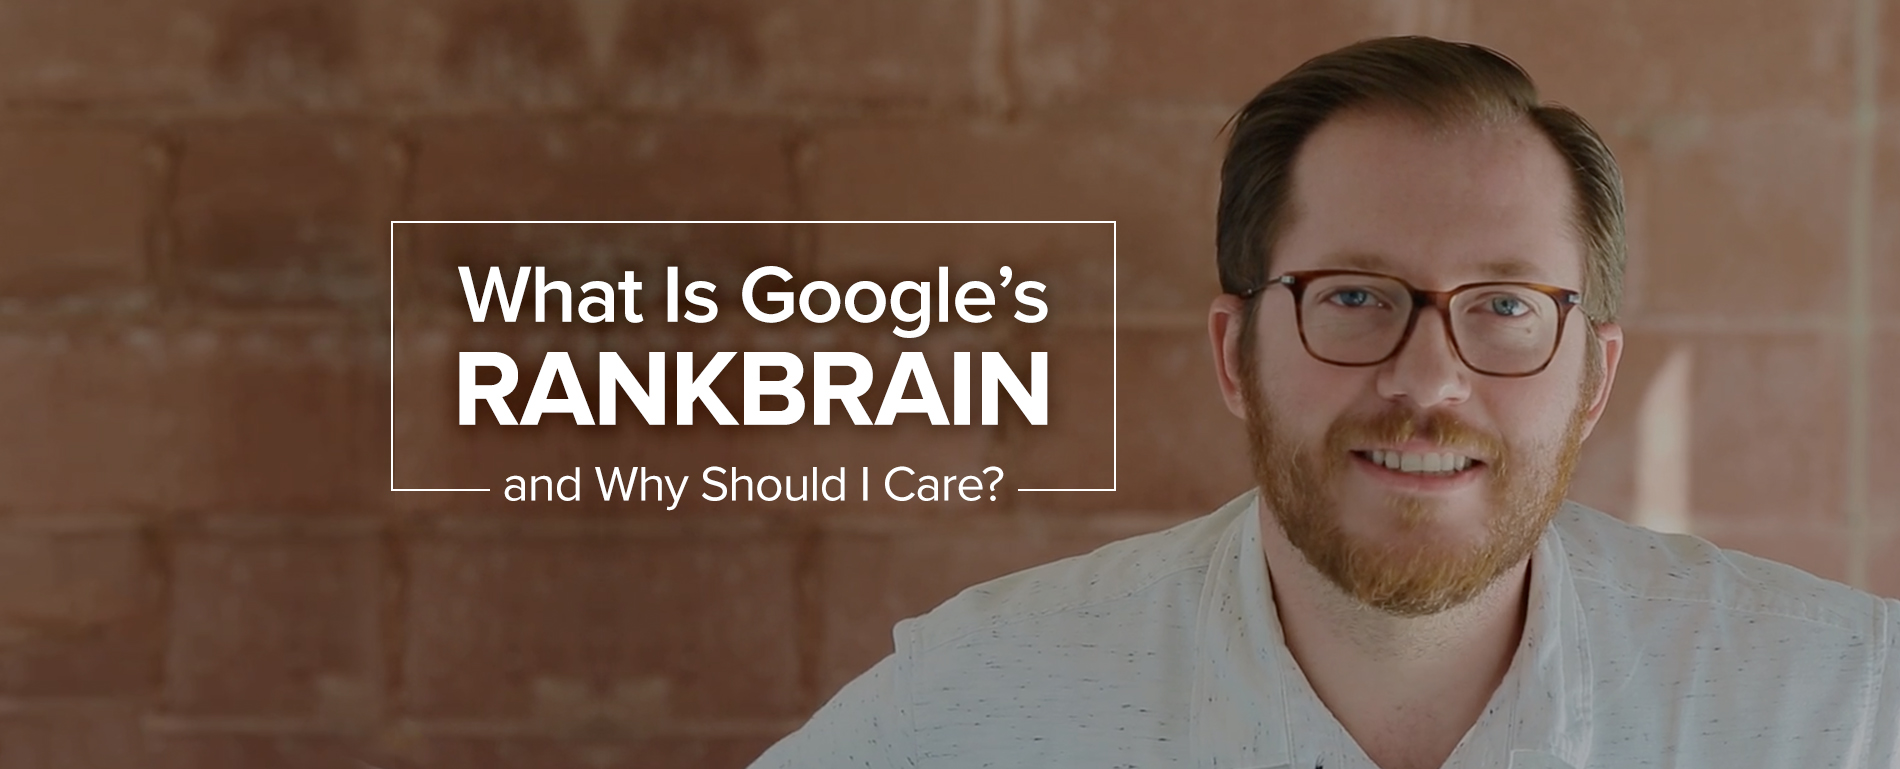 What is googles rank brain and why should i care?